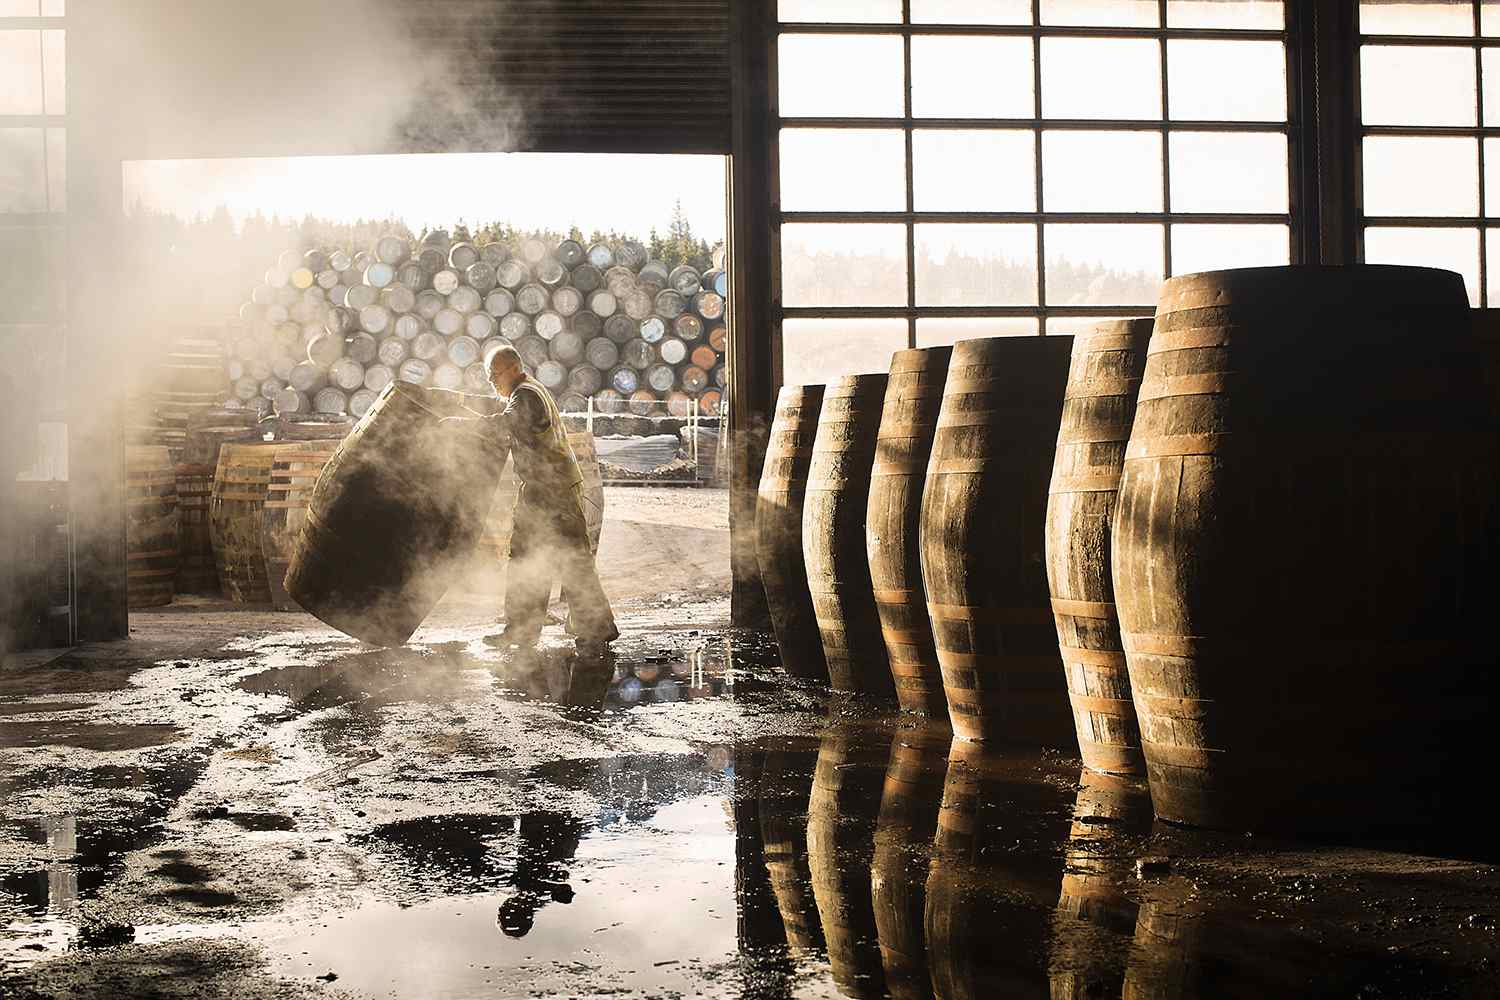 A cooper works at a whiskey barrel cooperage.